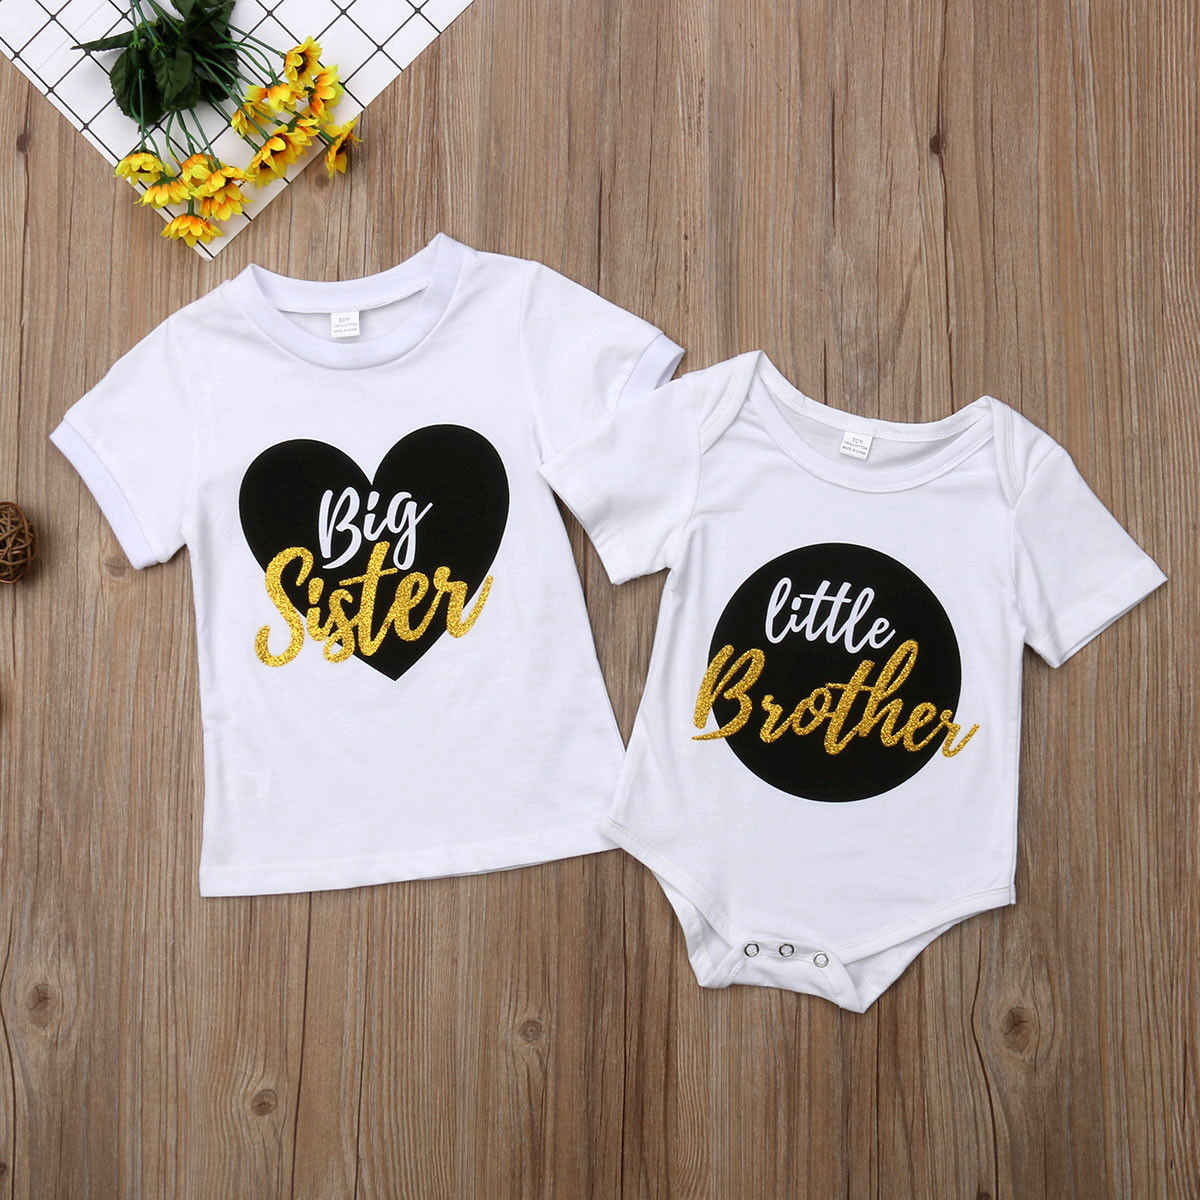 eee4f8cd6877 ... Big Sister Little Brother Matching Outfits Baby Boy Bodysuits Girl T  shirt Kids Top Tee Clothes ...